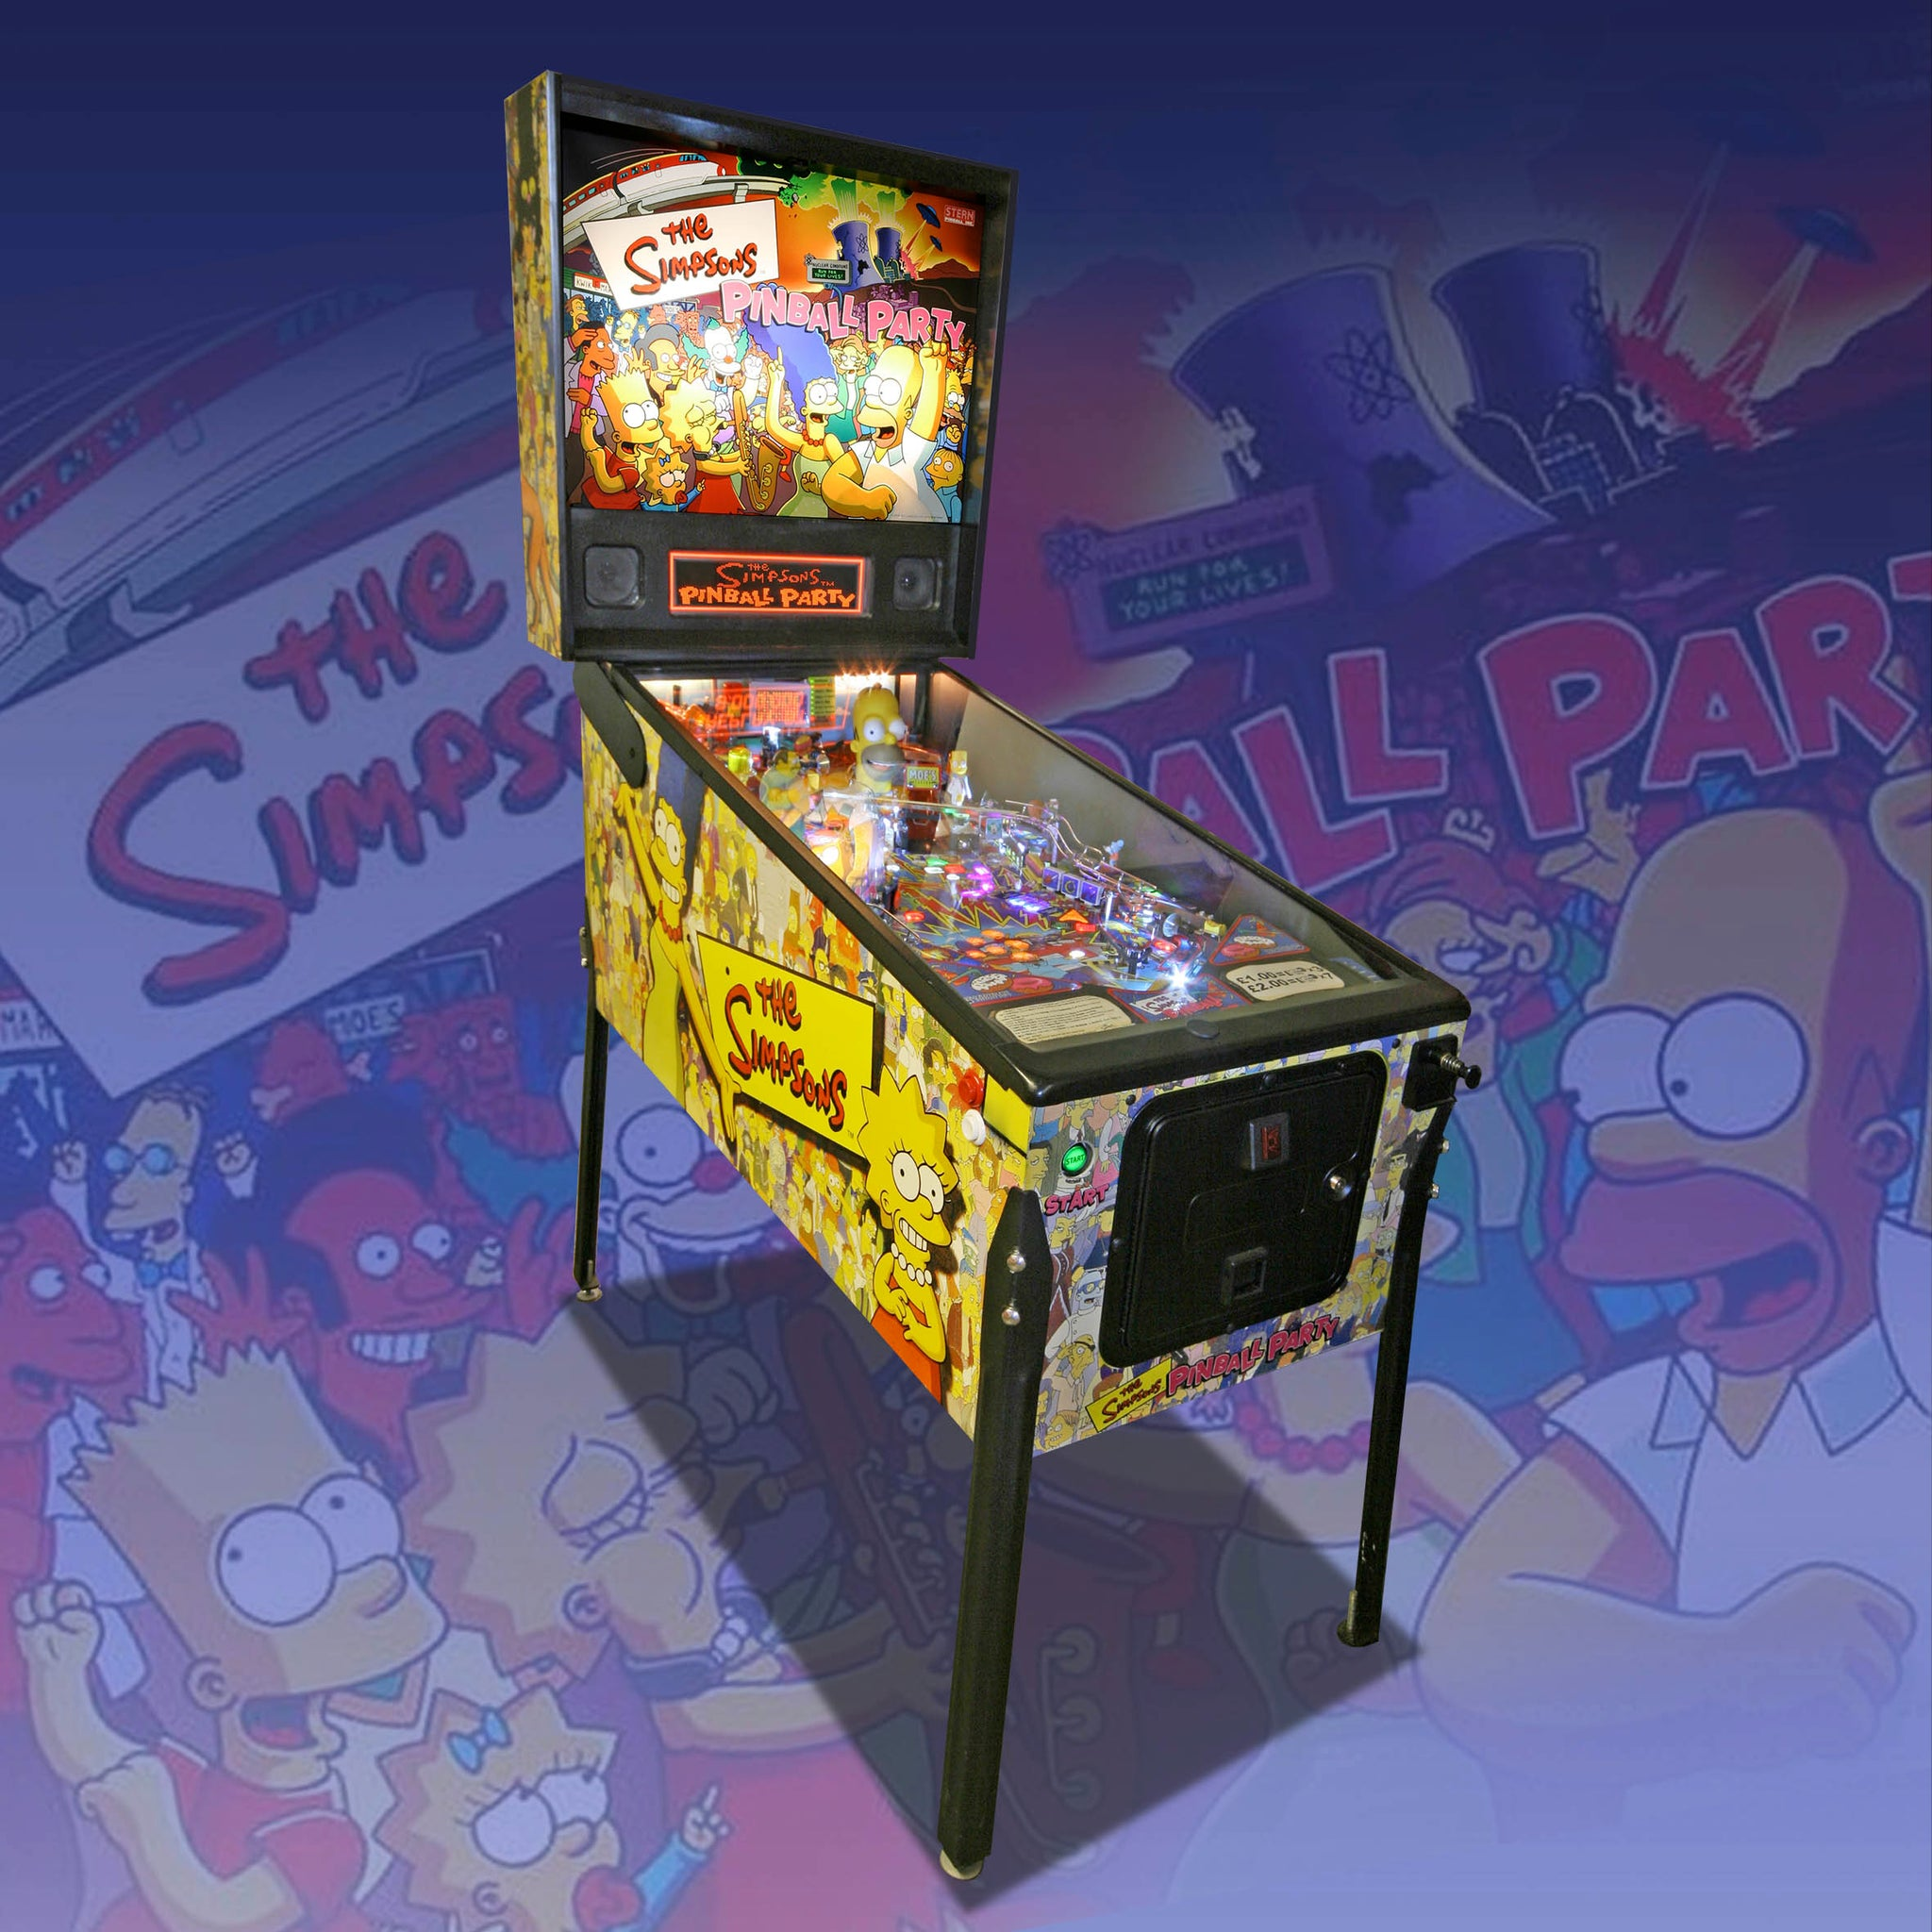 The Simpsons Party Pinball by Stern